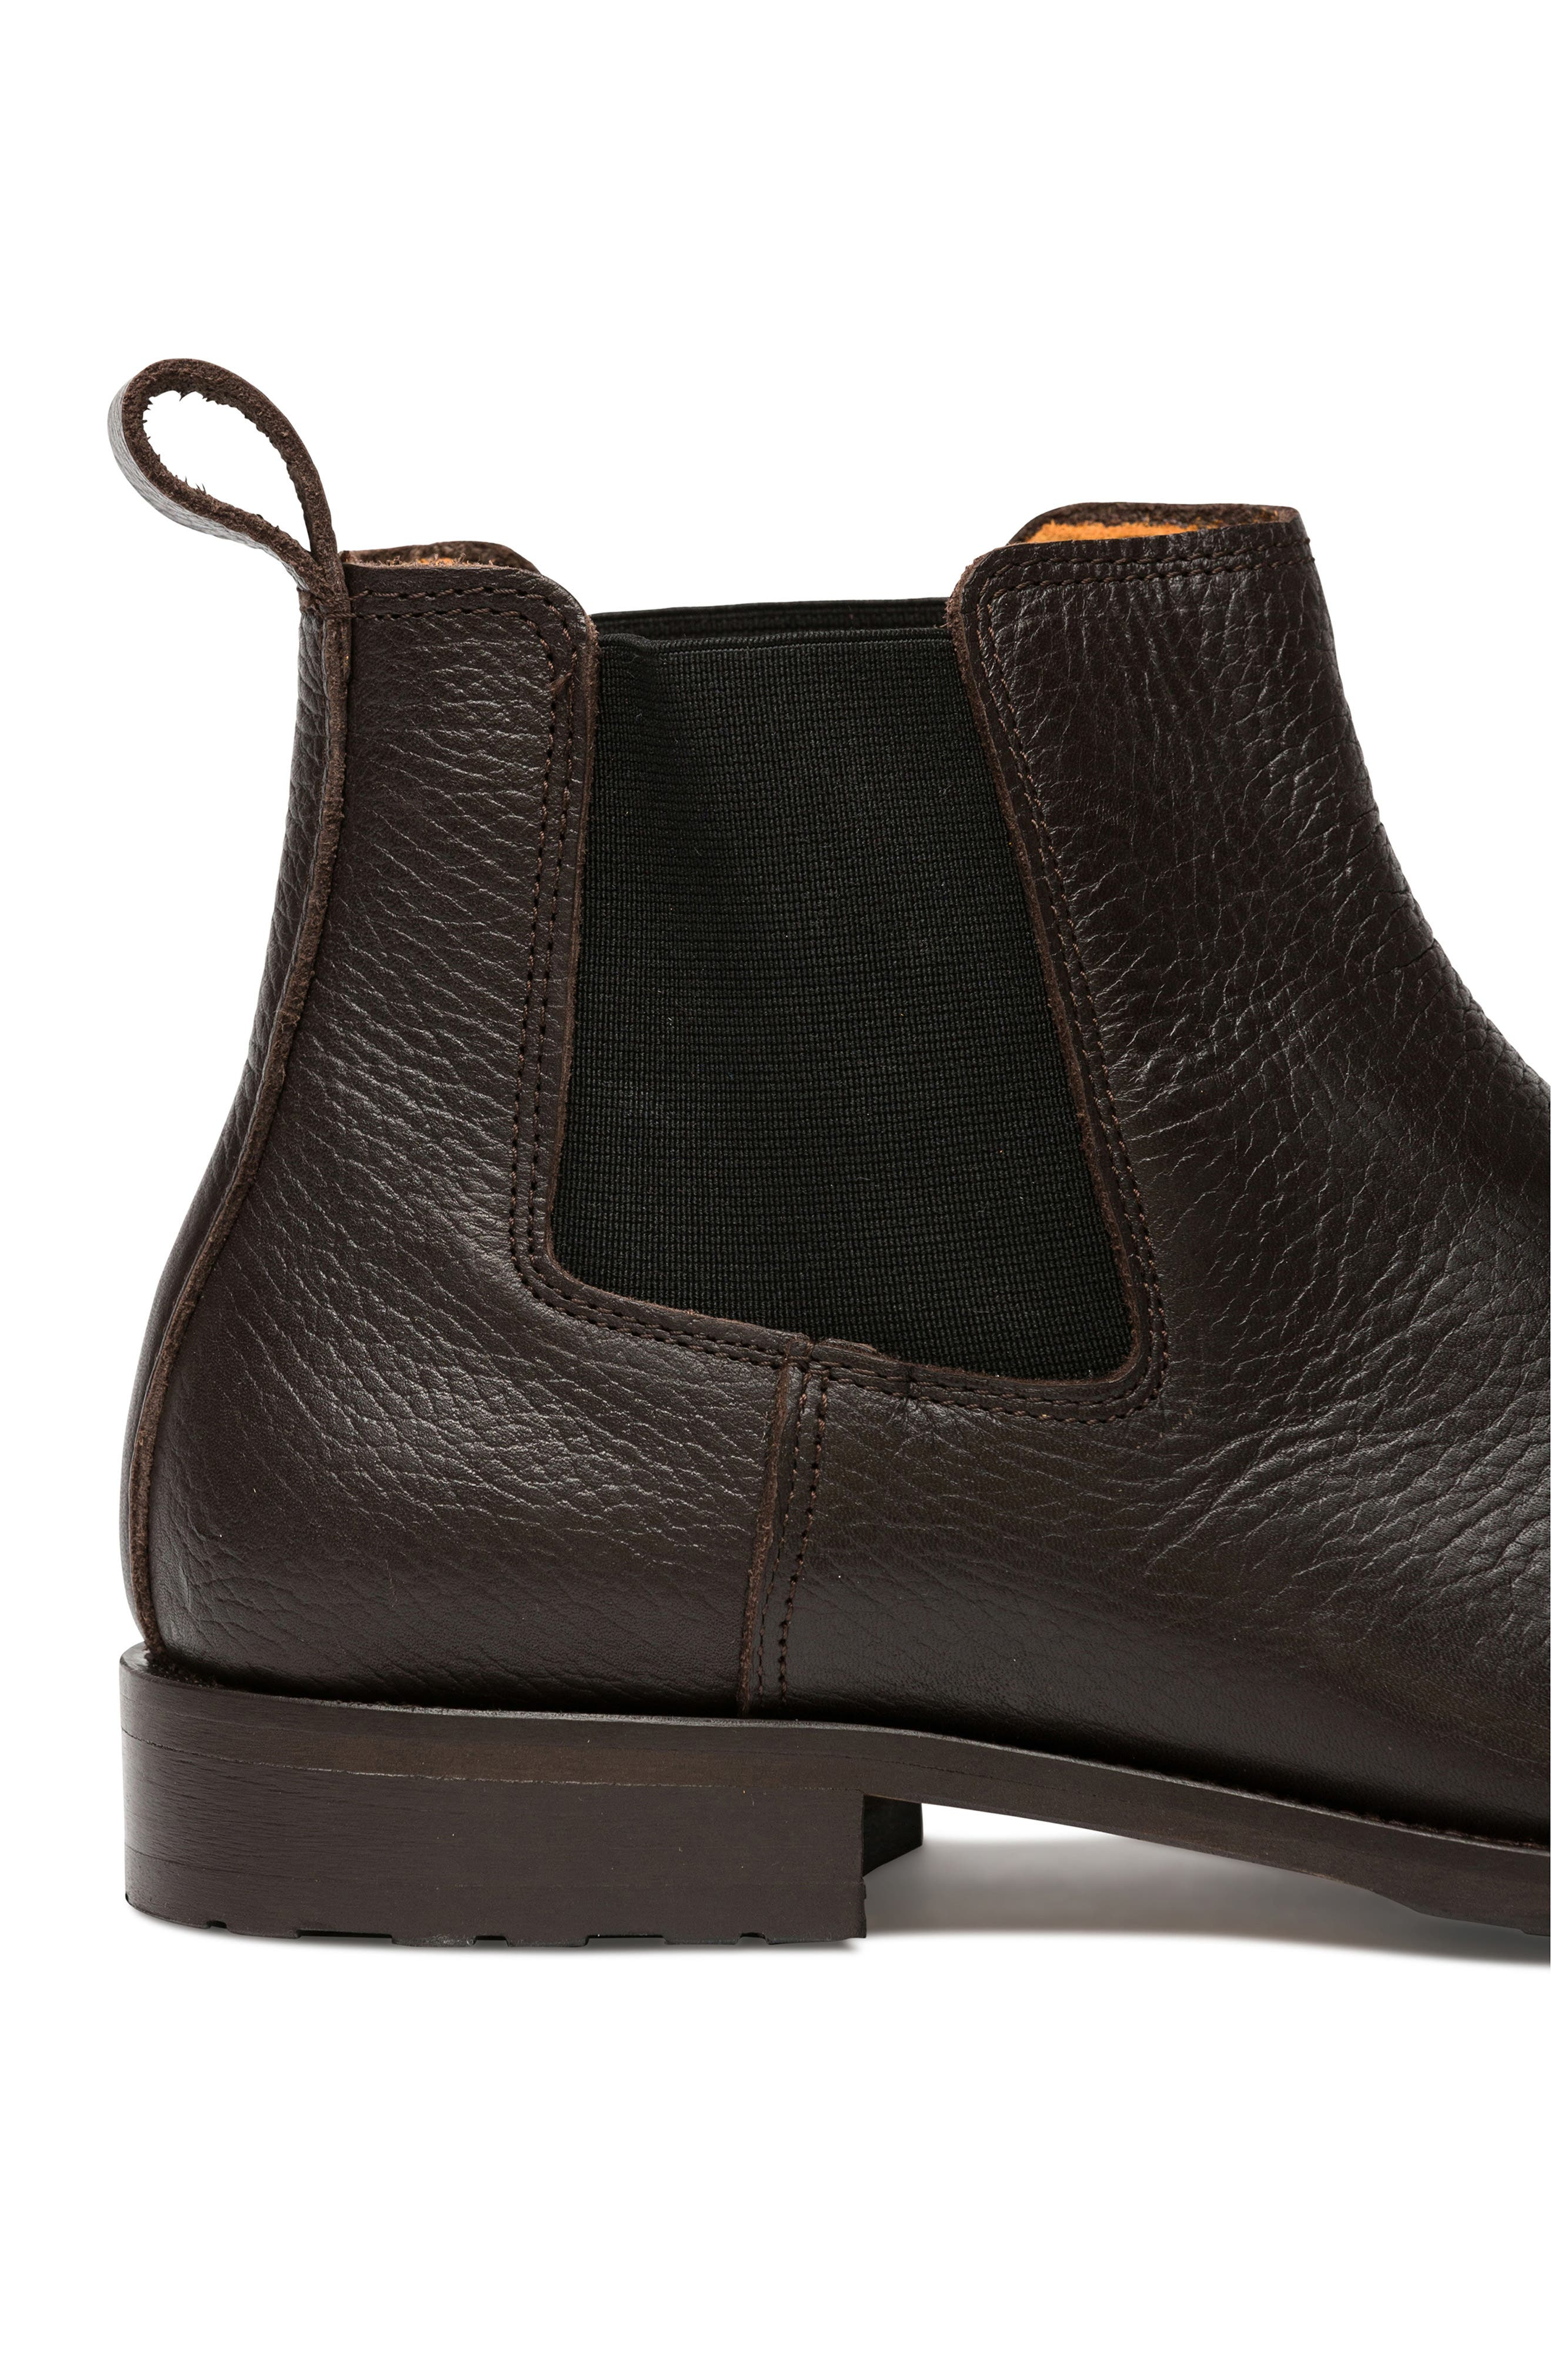 Westholme Chelsea Boot,                             Alternate thumbnail 6, color,                             CHOCOLATE LEATHER